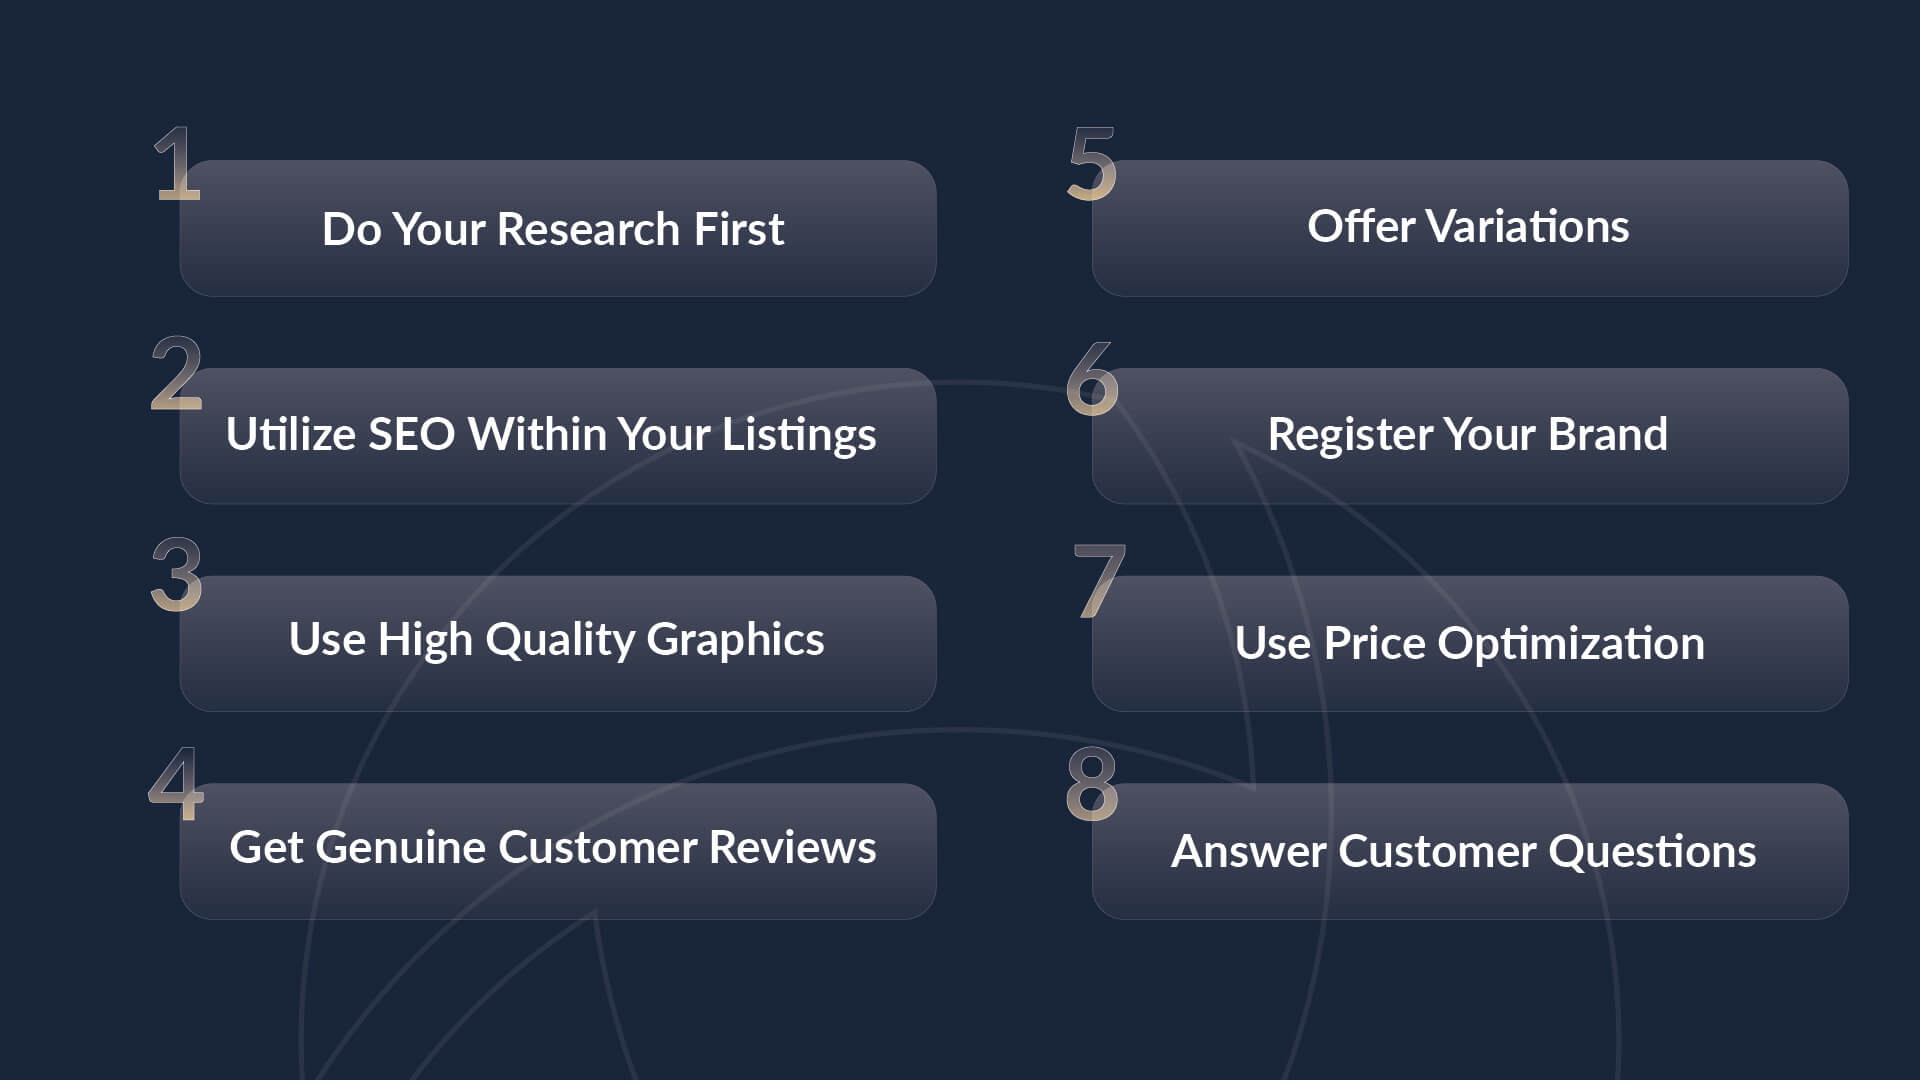 The 8 basic steps for ranking well on Amazon Do Your Research First, Utilize SEO Within Your Listings, Use High Quality Graphics, Get Genuine Customer Reviews, Offer Variations, Register Your Brand, Use Price Optimization, Answer Customer Questions